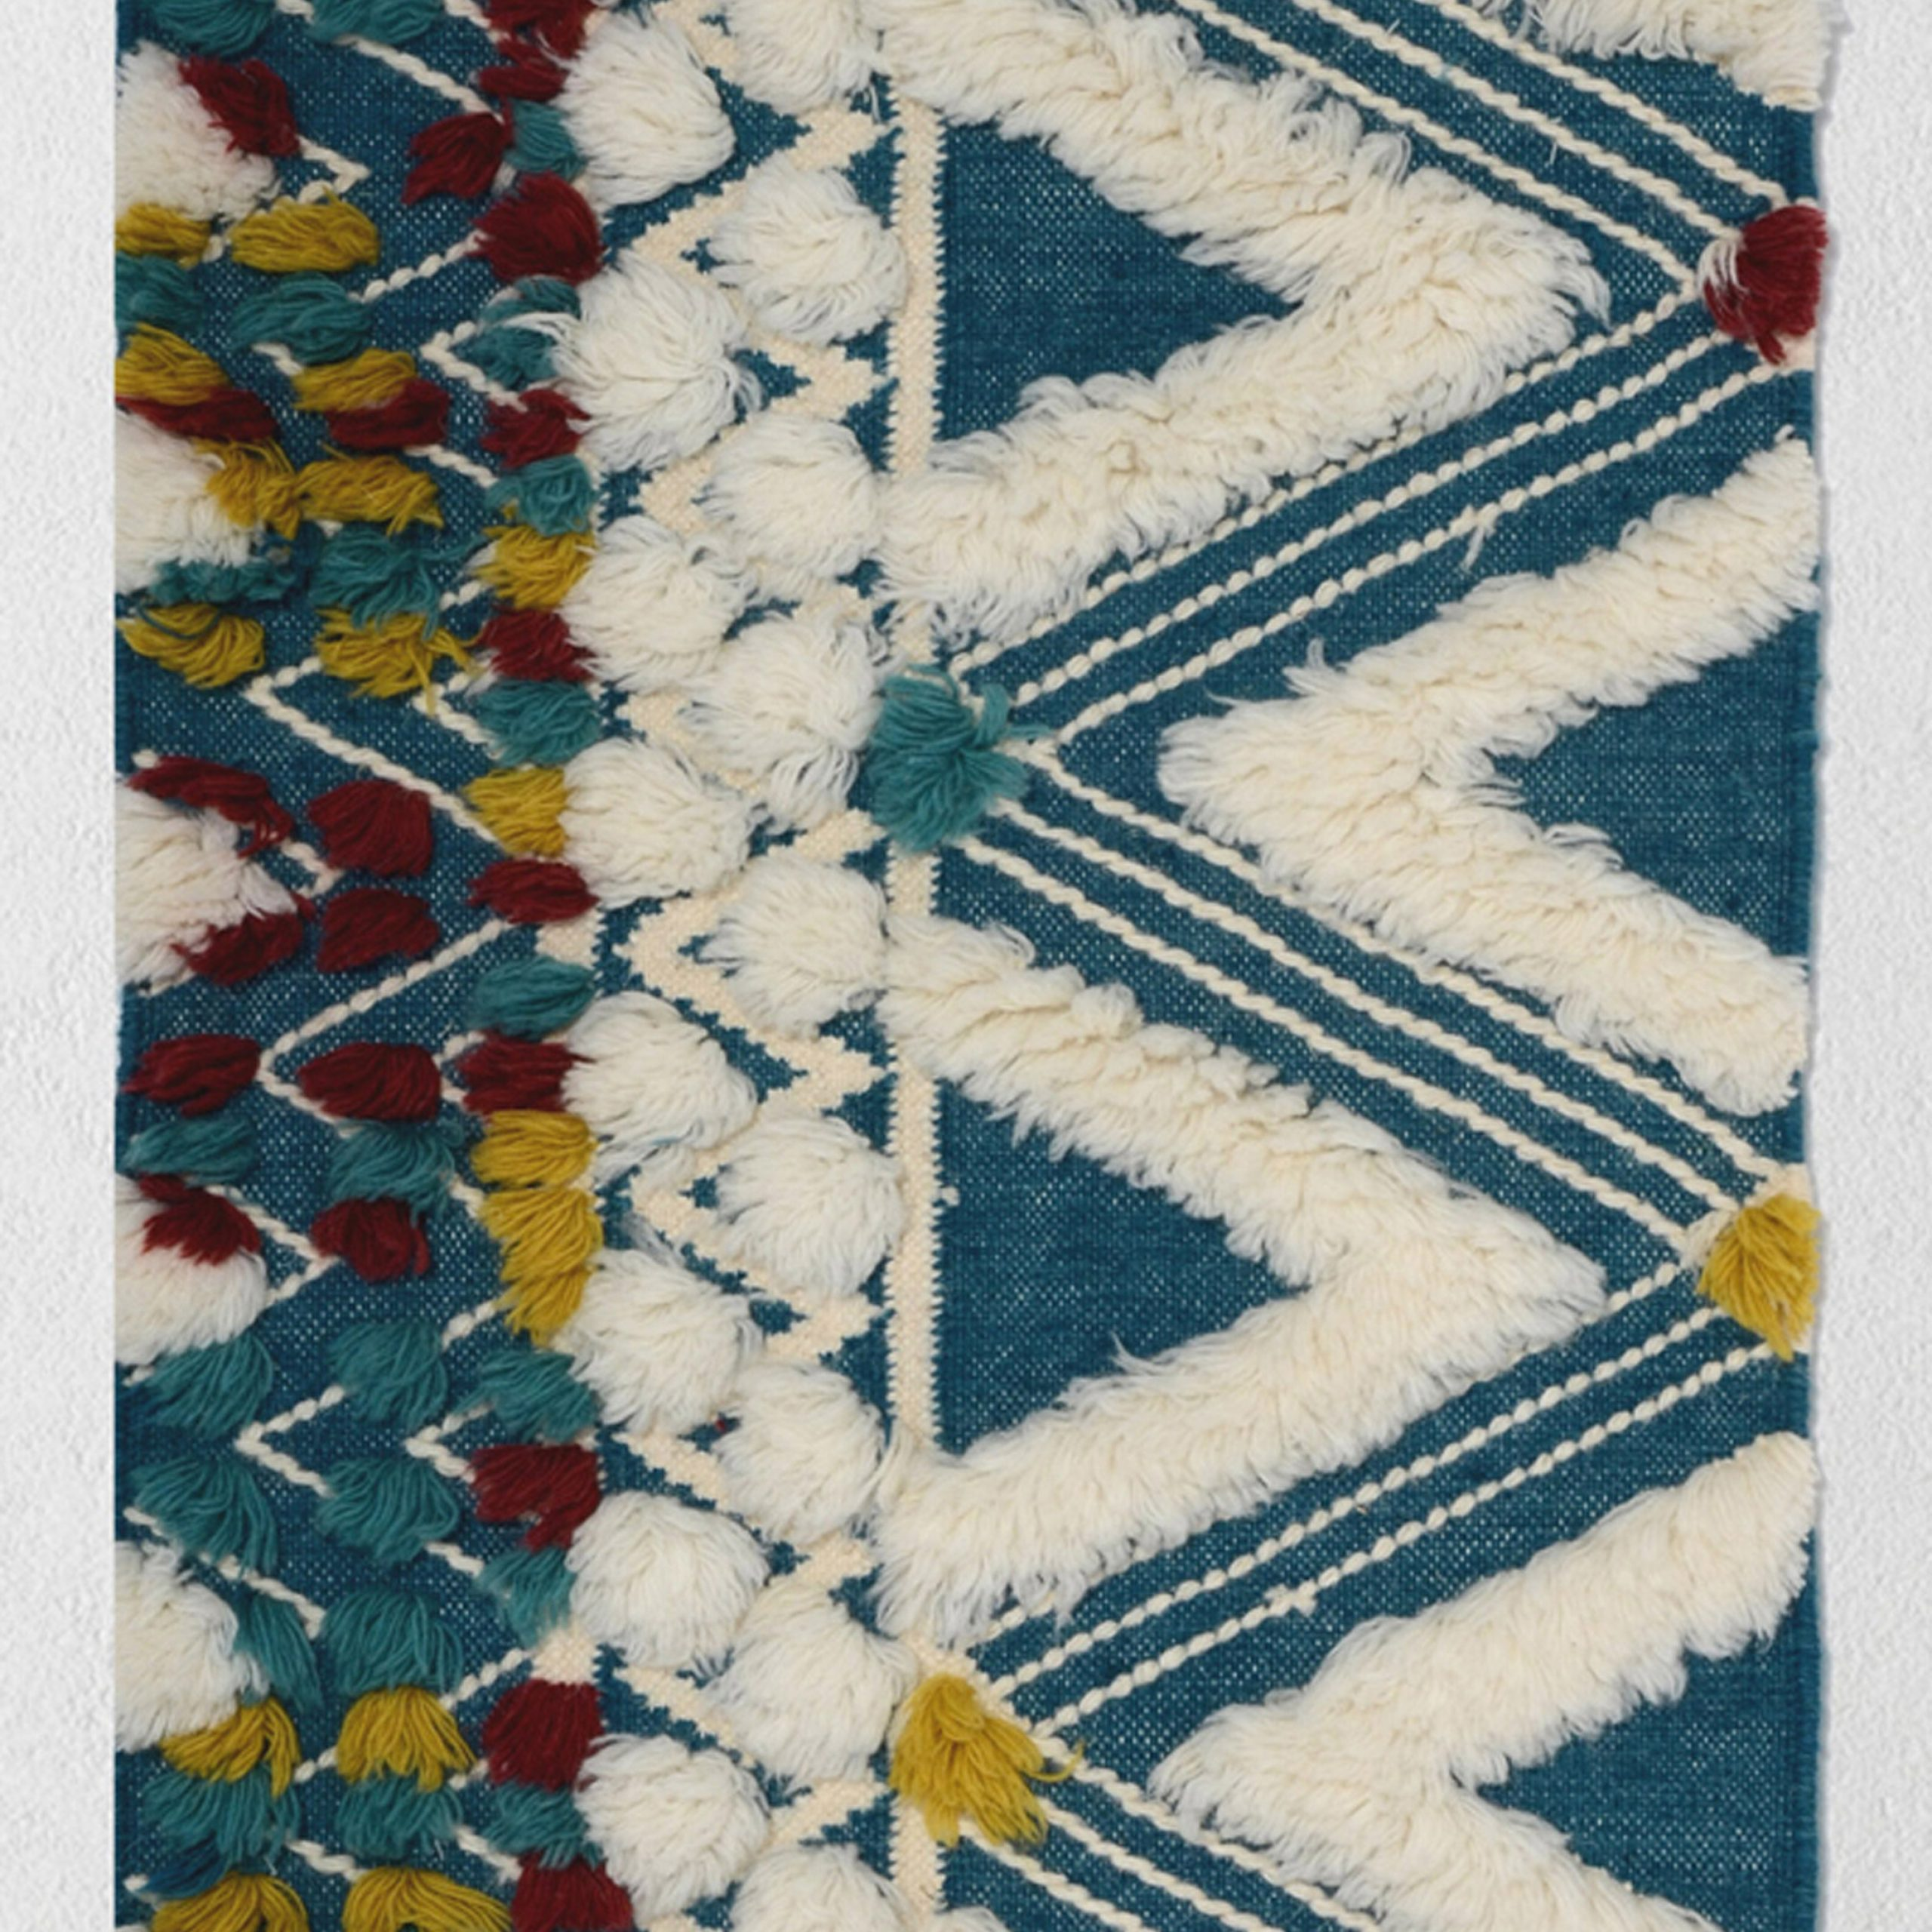 Southwestern Bohemian Wall Hanging With Trendy Blended Fabric Southwestern Bohemian Wall Hangings (View 2 of 20)